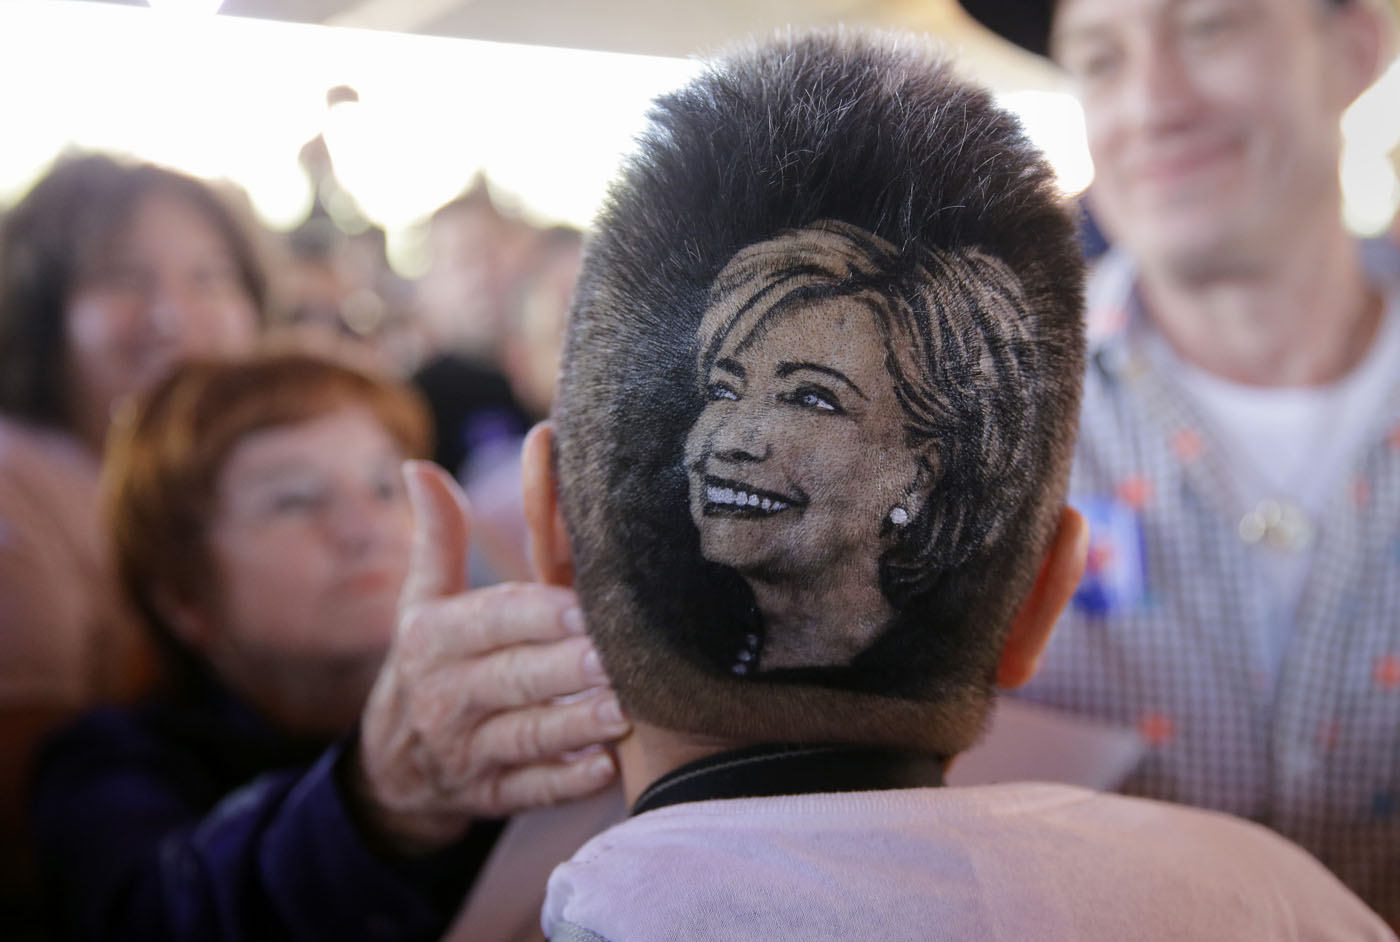 Clinton campaign event, students march in Chile, migrants cross into Germany | Oct. 15